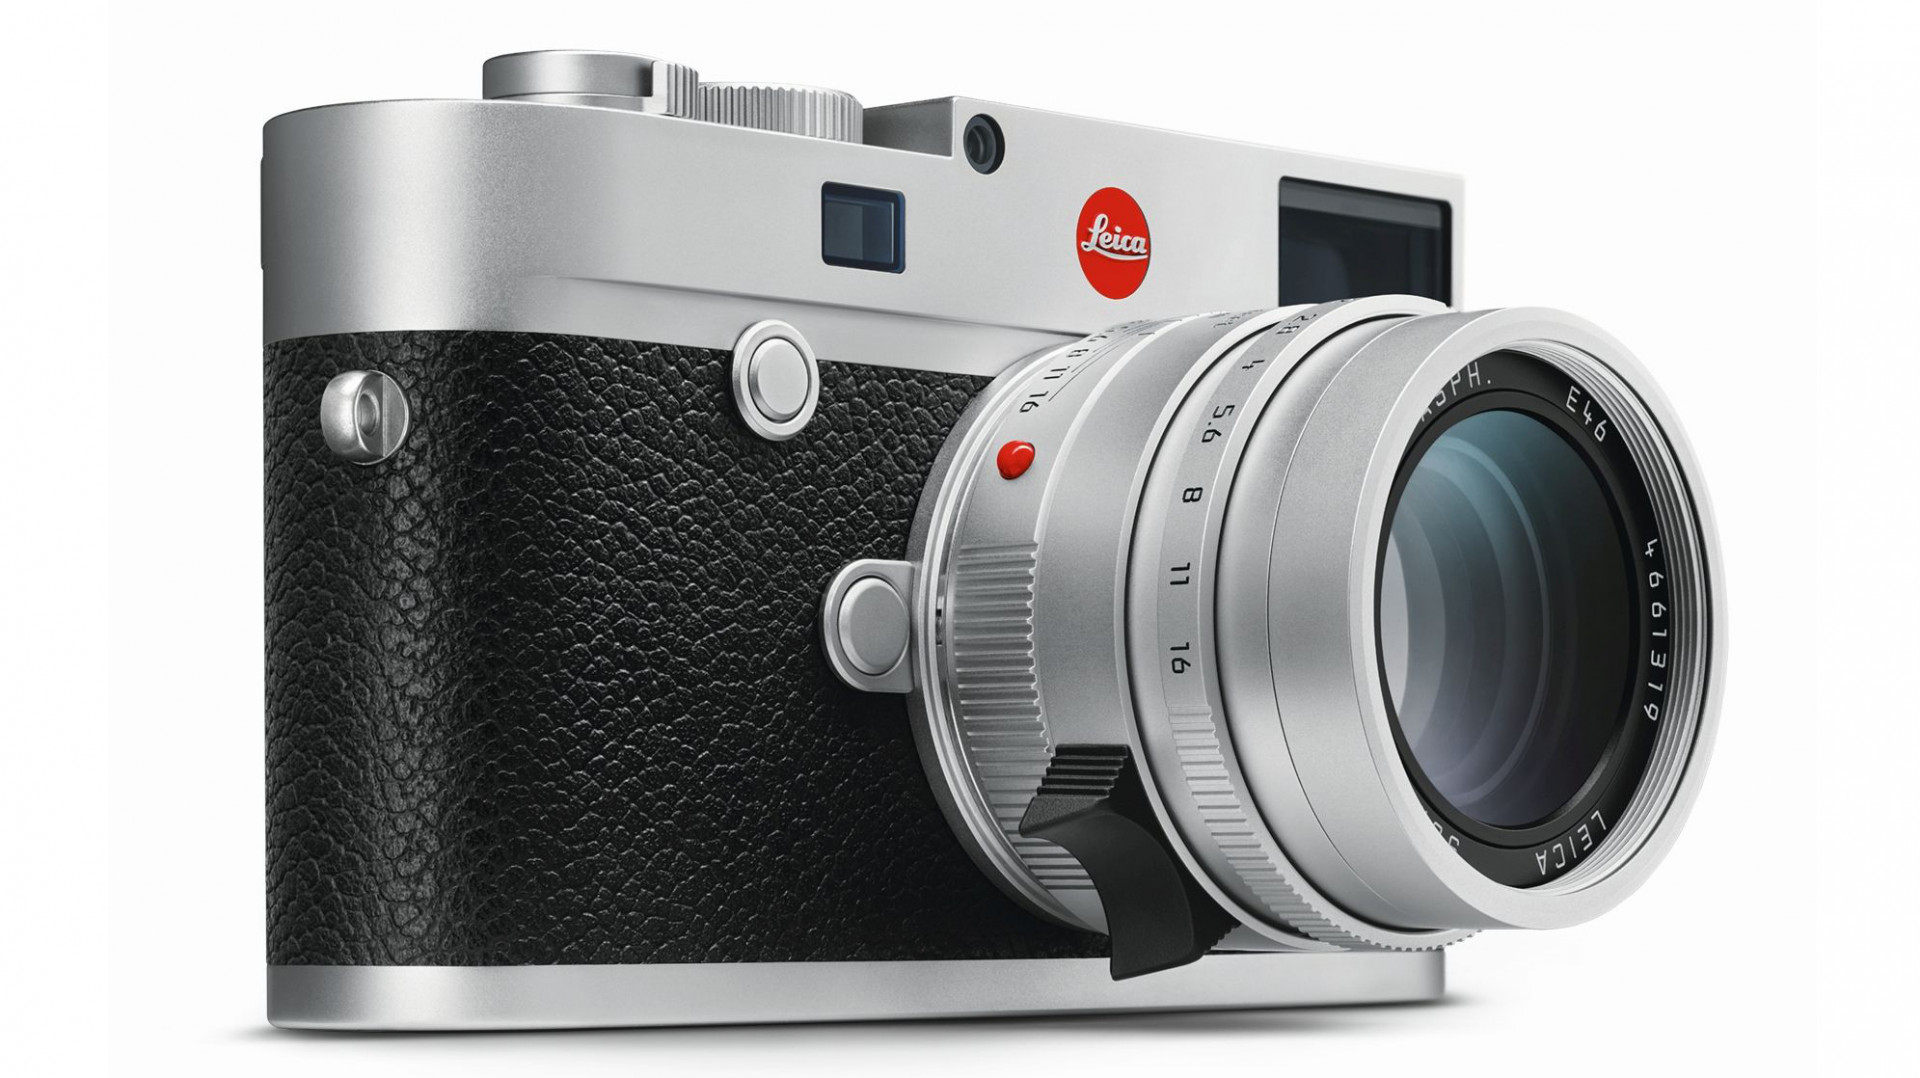 leica m10 messsucherkamera mit wlan und ohne video c 39 t fotografie. Black Bedroom Furniture Sets. Home Design Ideas